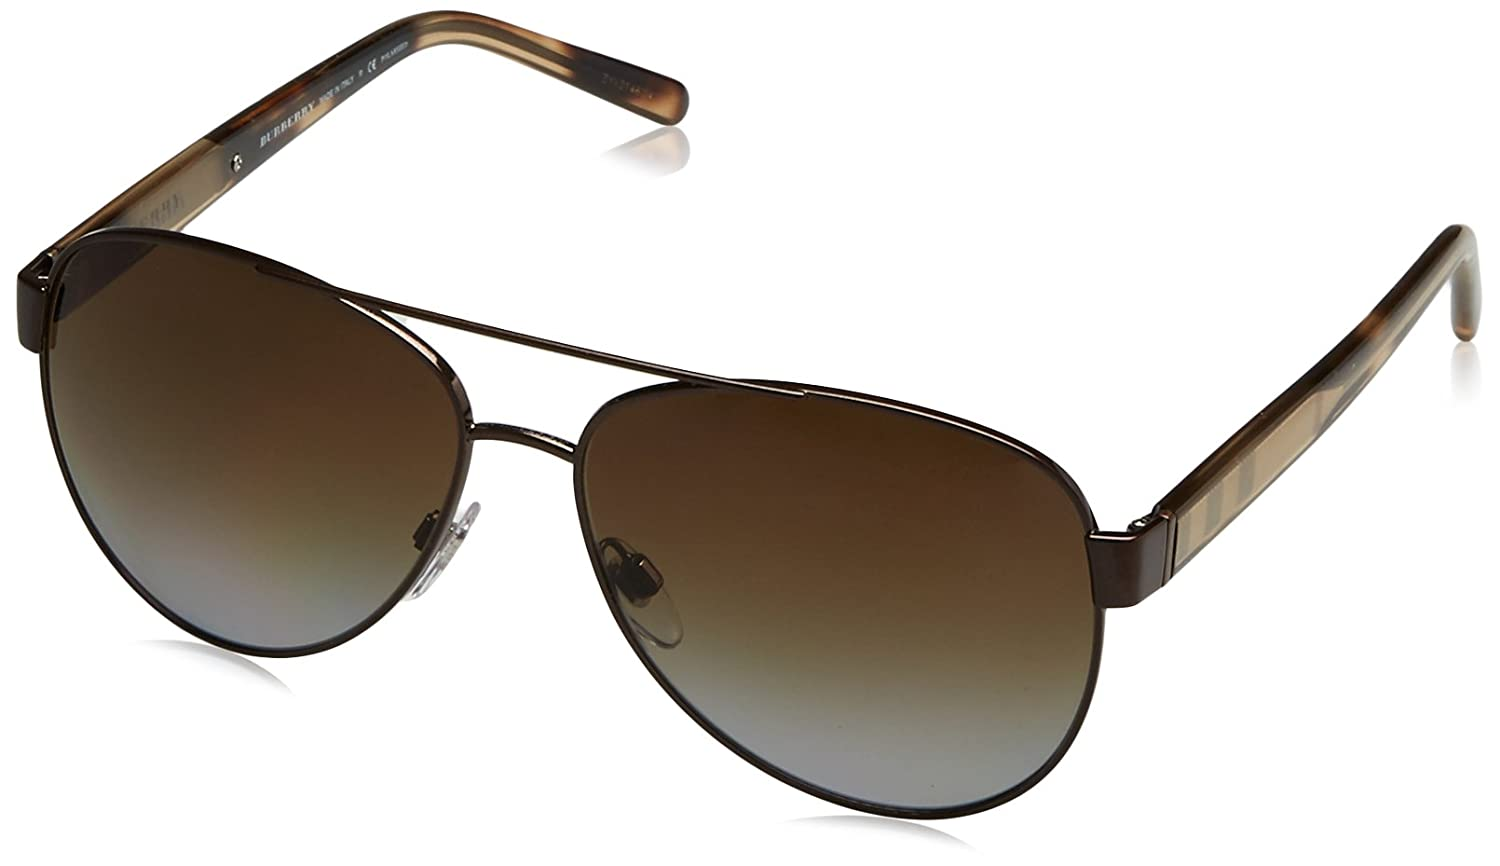 ce2d52eba5 Amazon.com  Burberry Women s BE3084 Sunglasses Brushed Brown Polar Brown  Gradient 60mm  Burberry  Clothing